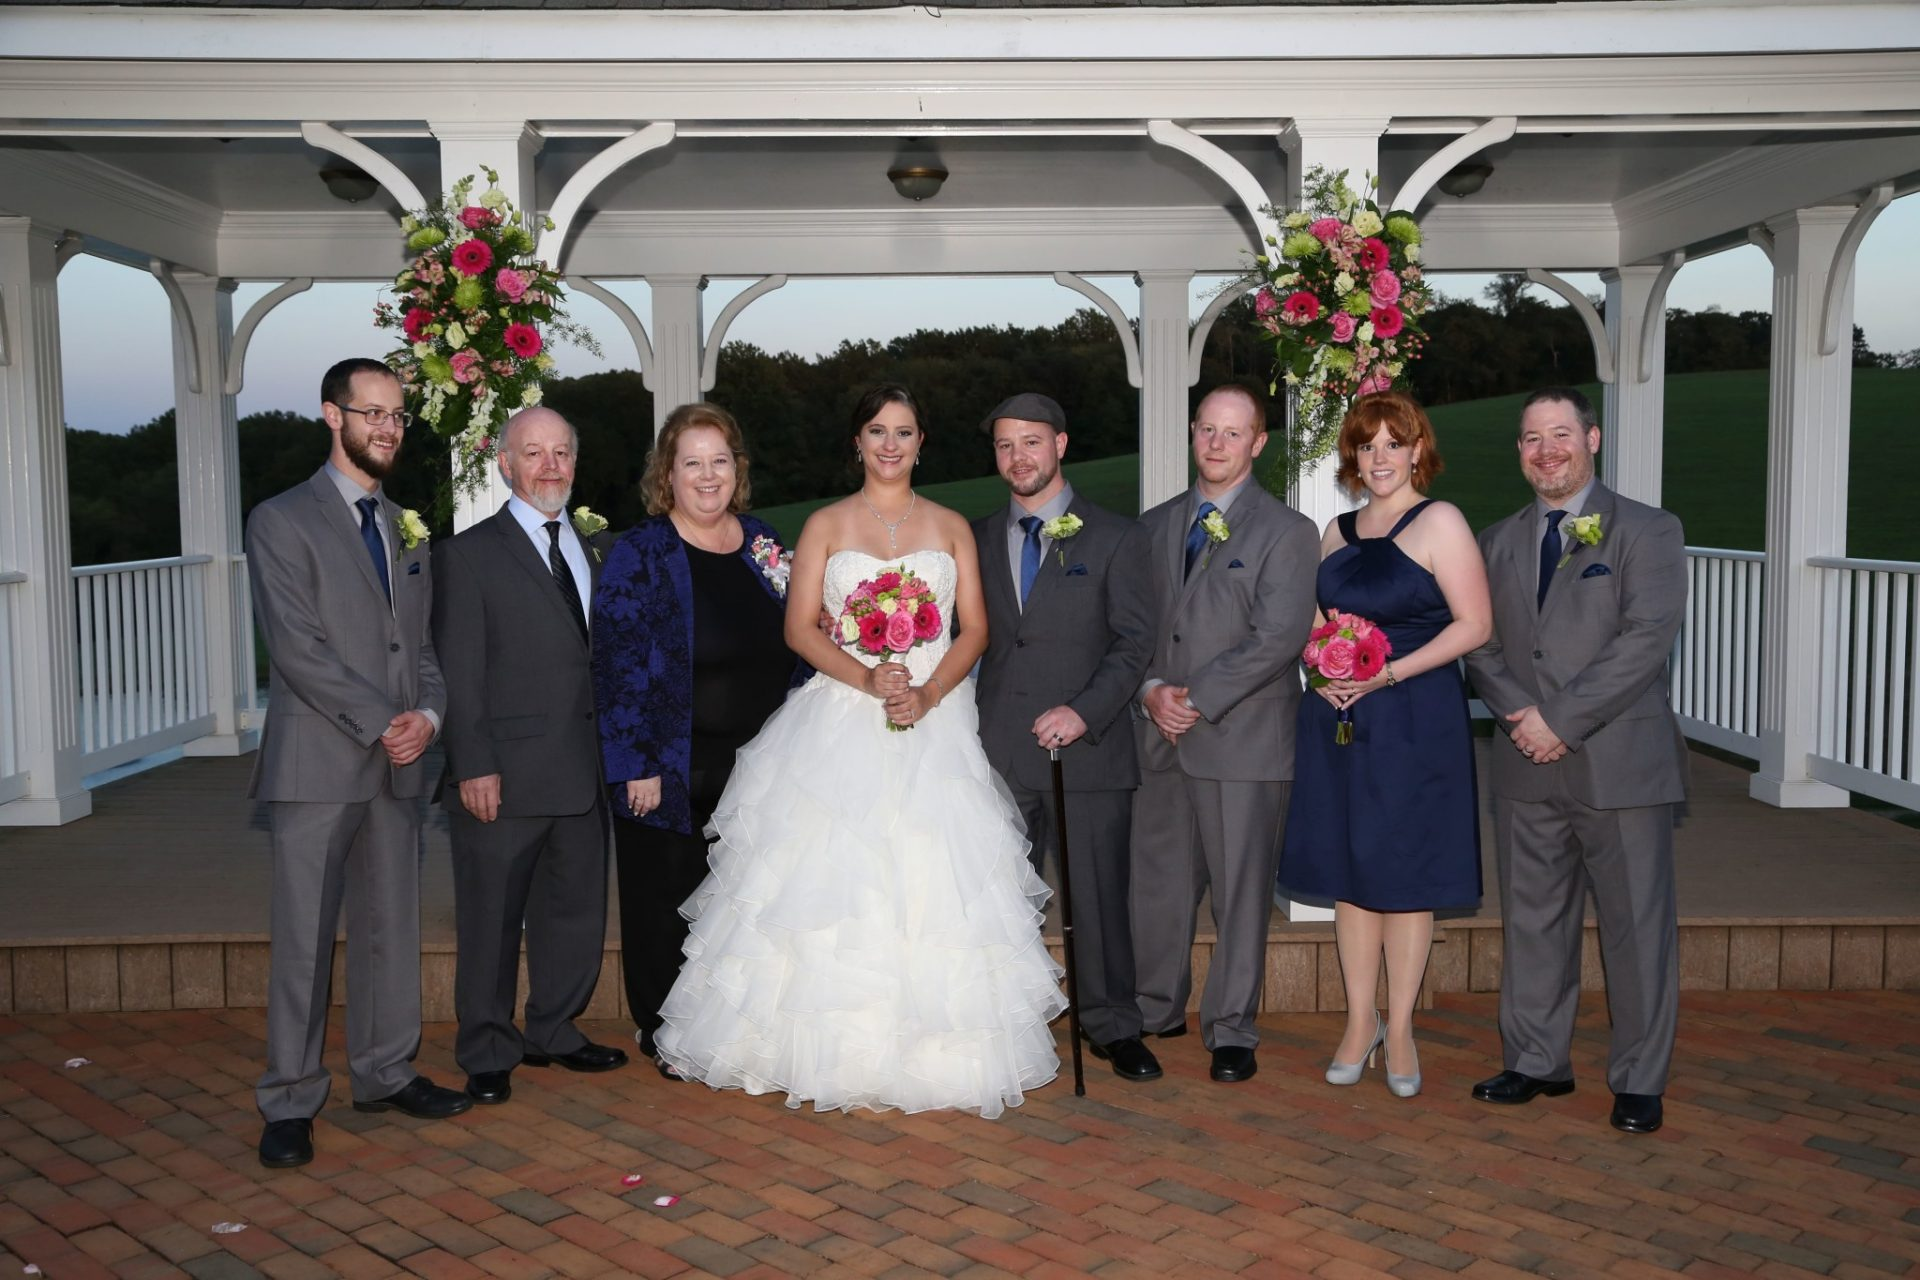 Wedding party on brick patio in front of wedding pavilion